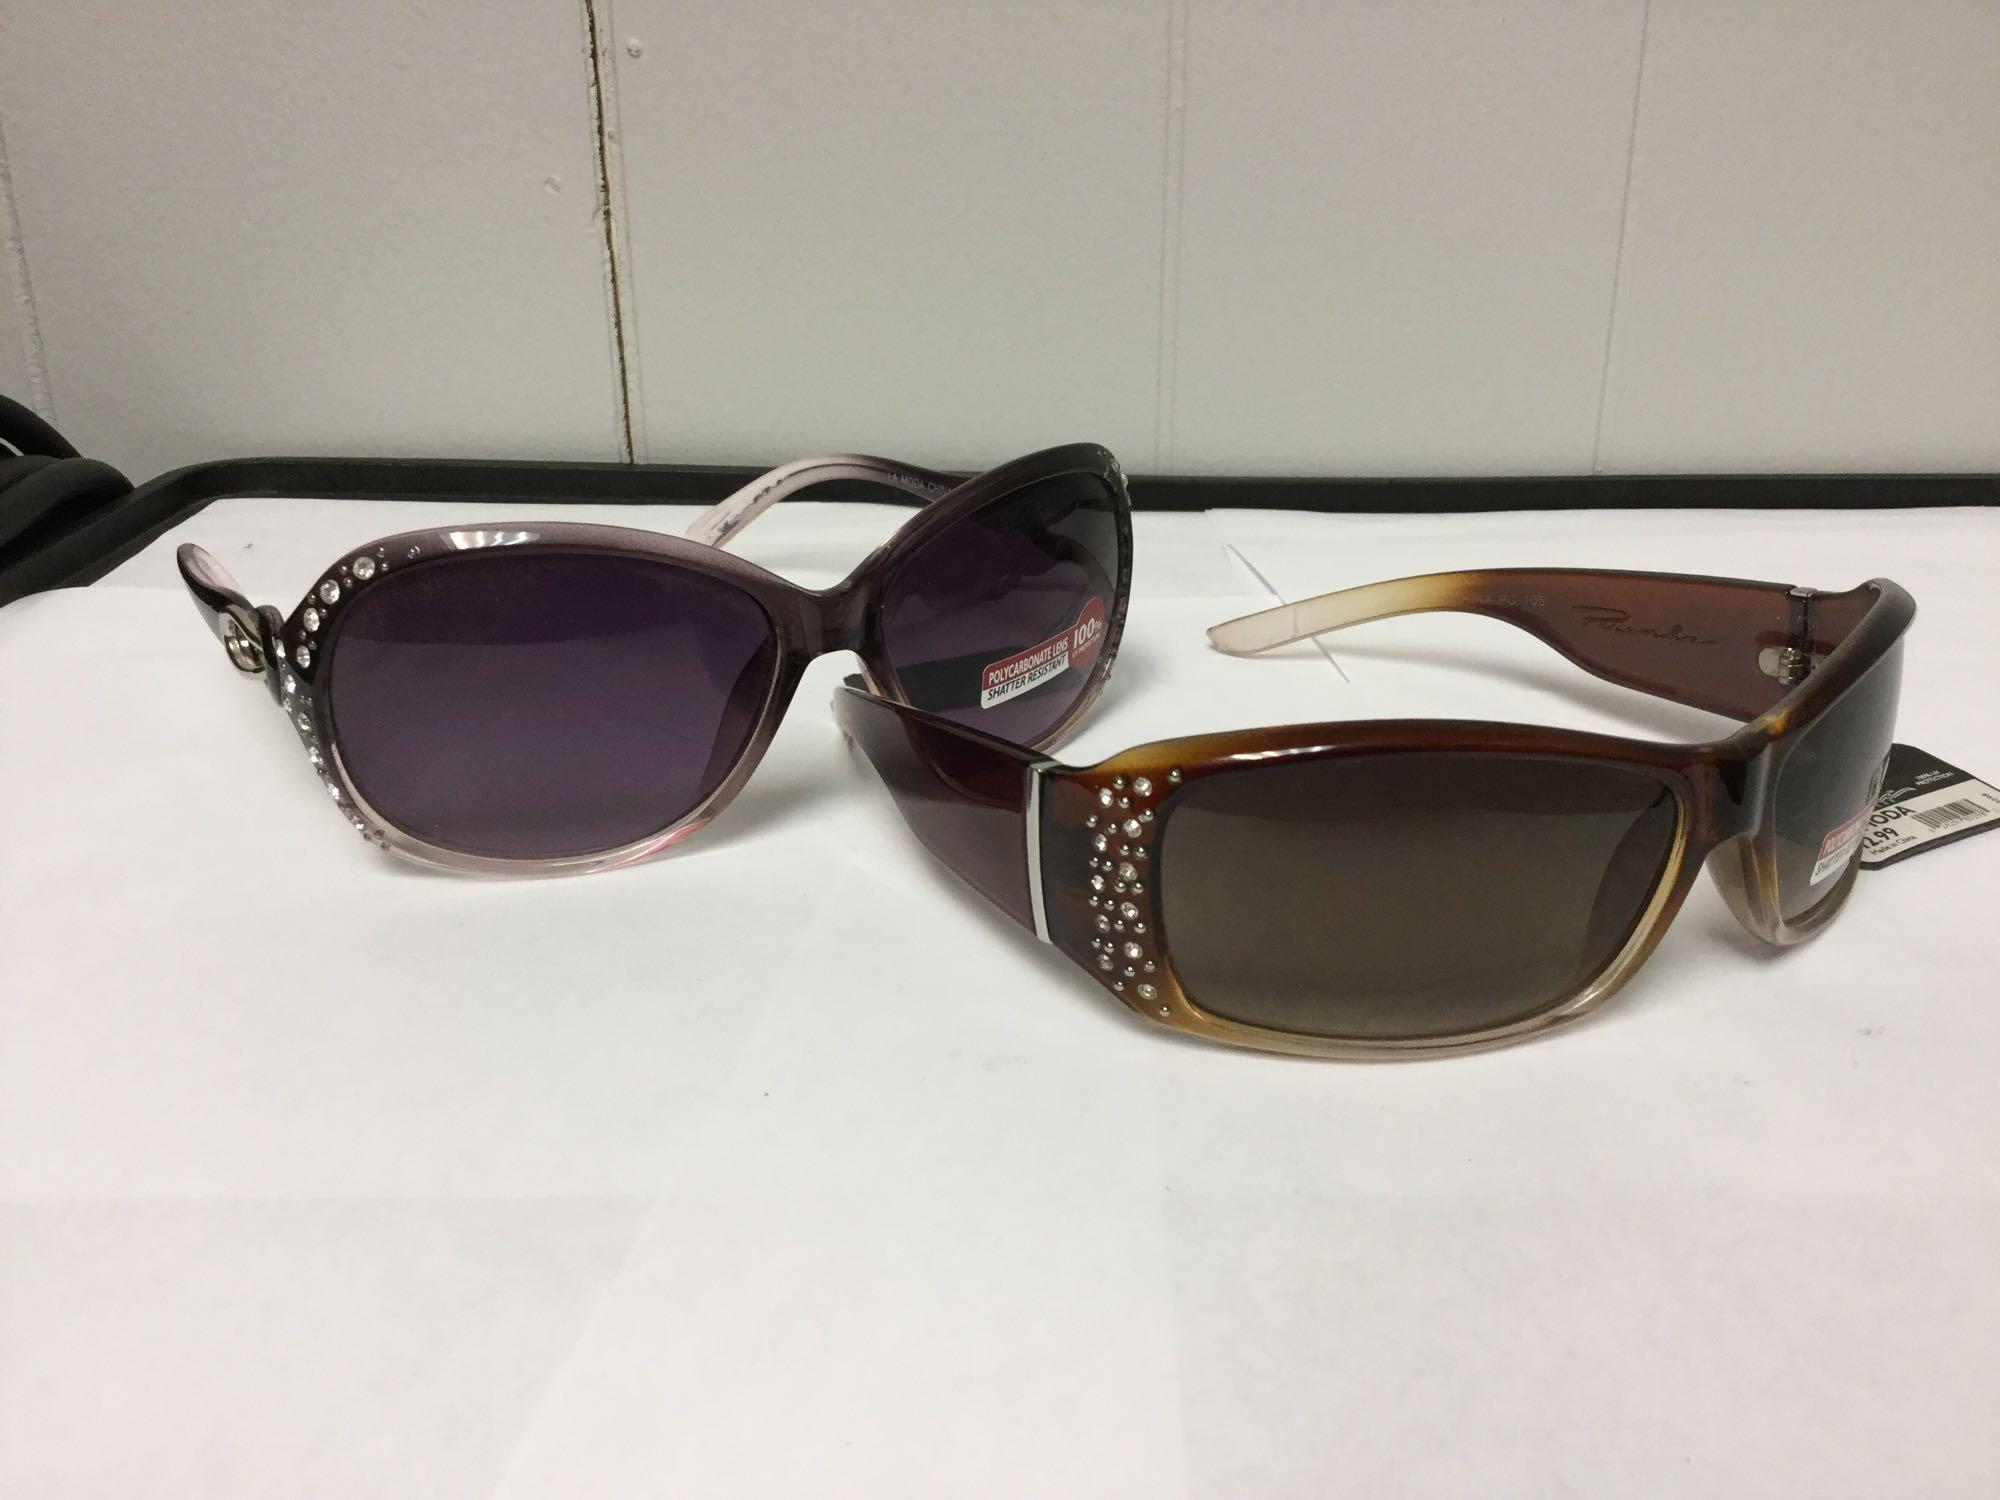 Lot 17 - Lot of 2 Women's Fashion Sunglasses